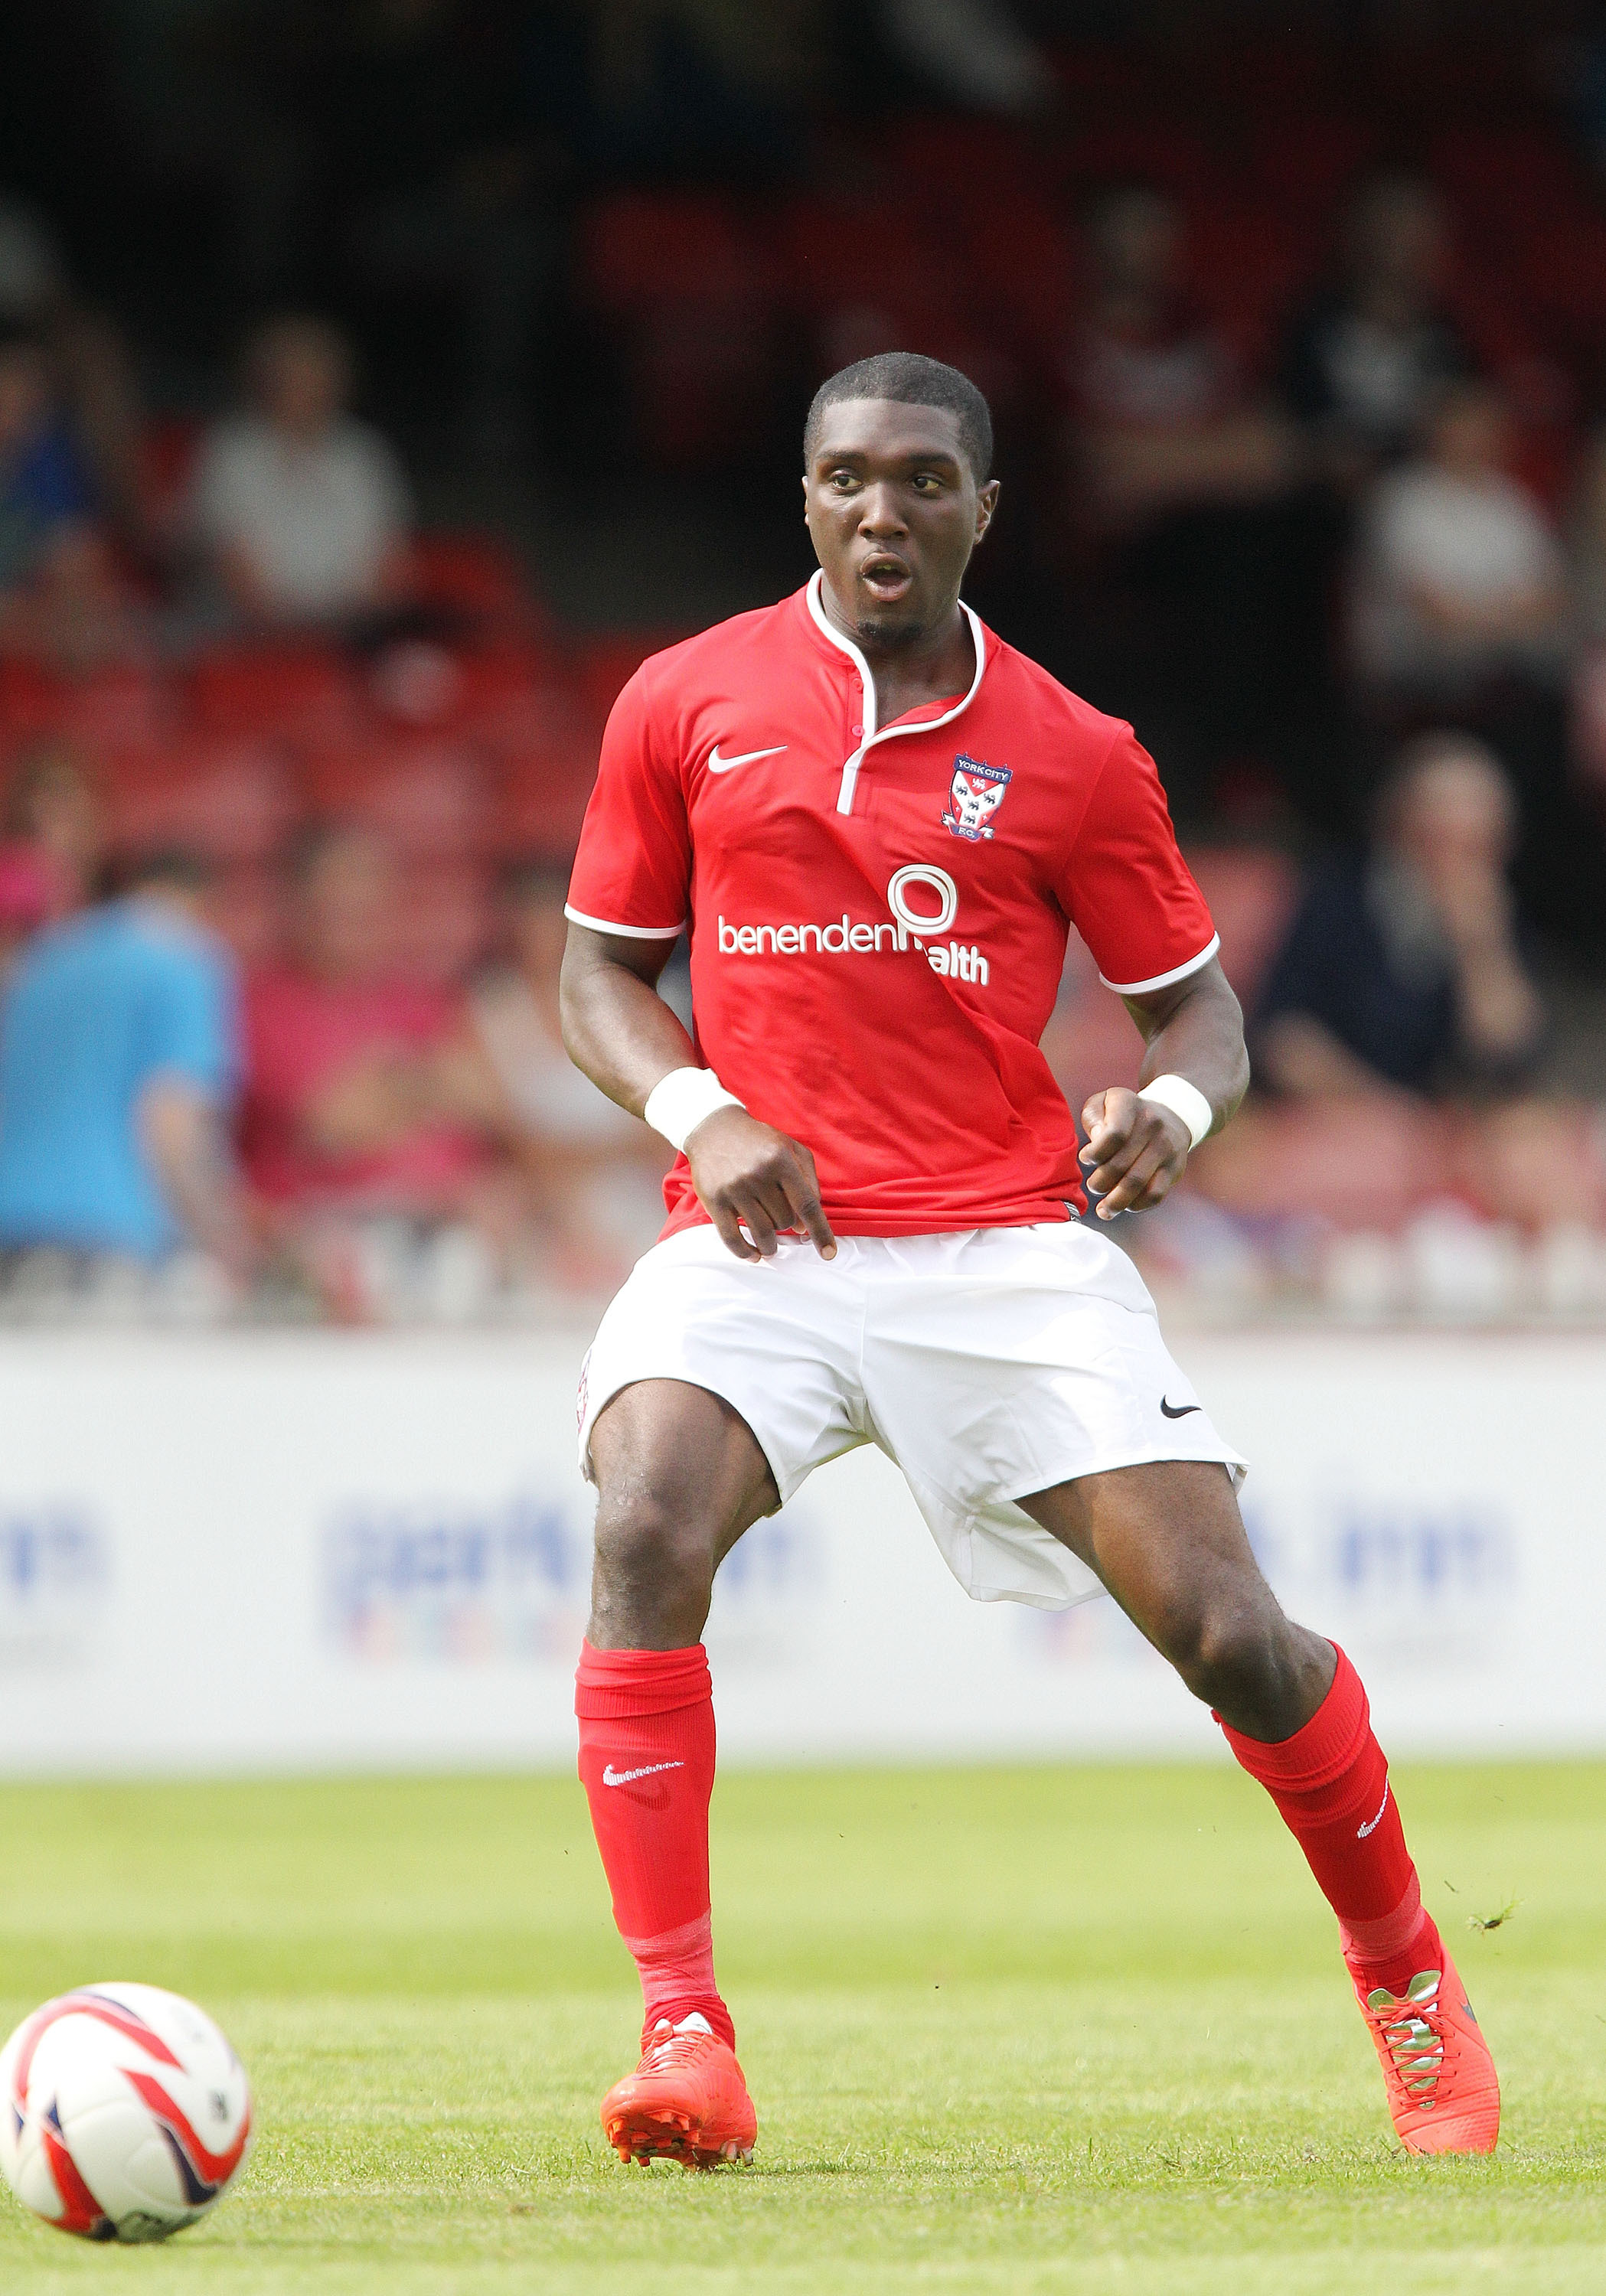 Femi Ilesanmi in pre-season friendly action for York City against Sheffield Wednesday at Bootham Crescent